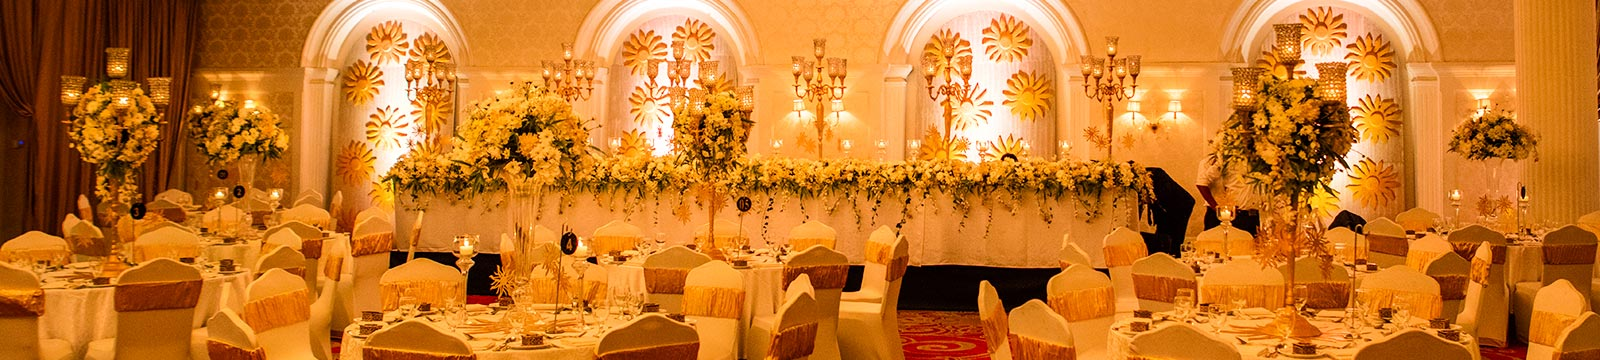 Wedding Packages in Colombo Hotels | Wedding Packages at Kingsbury